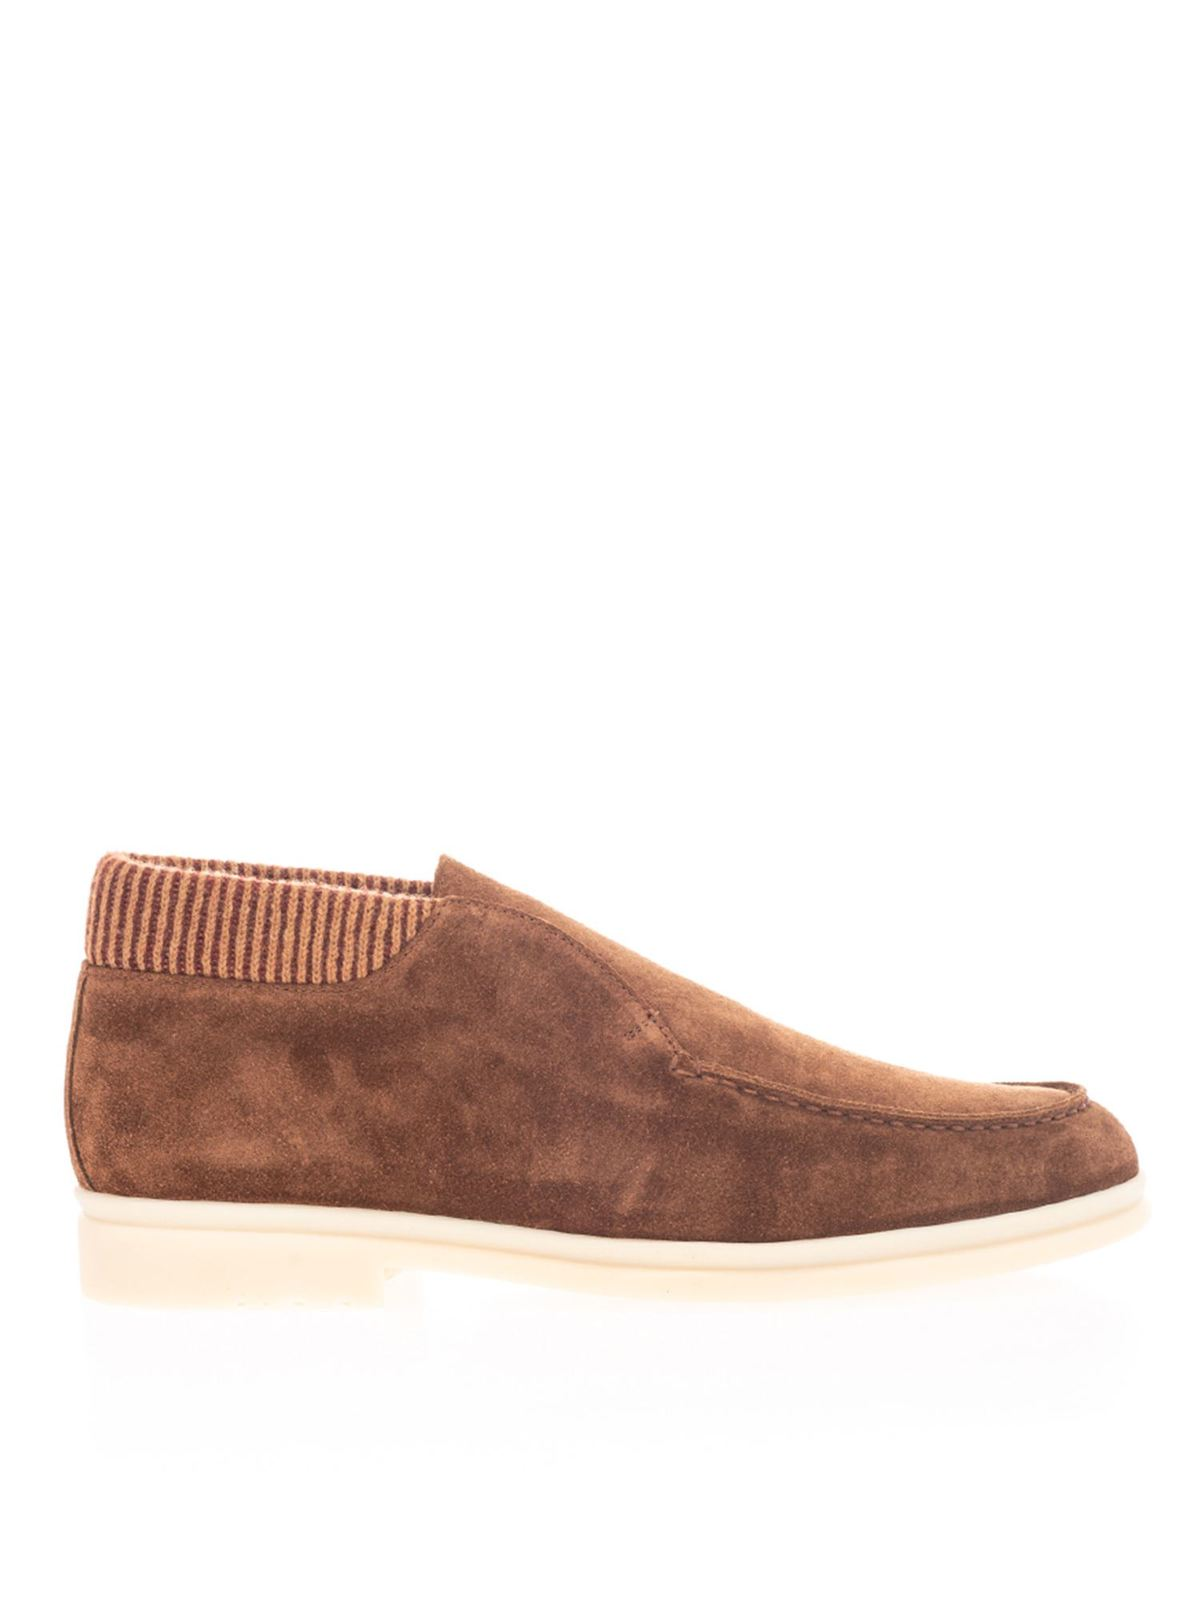 Loro Piana WOOL DETAILS LOAFERS IN BROWN